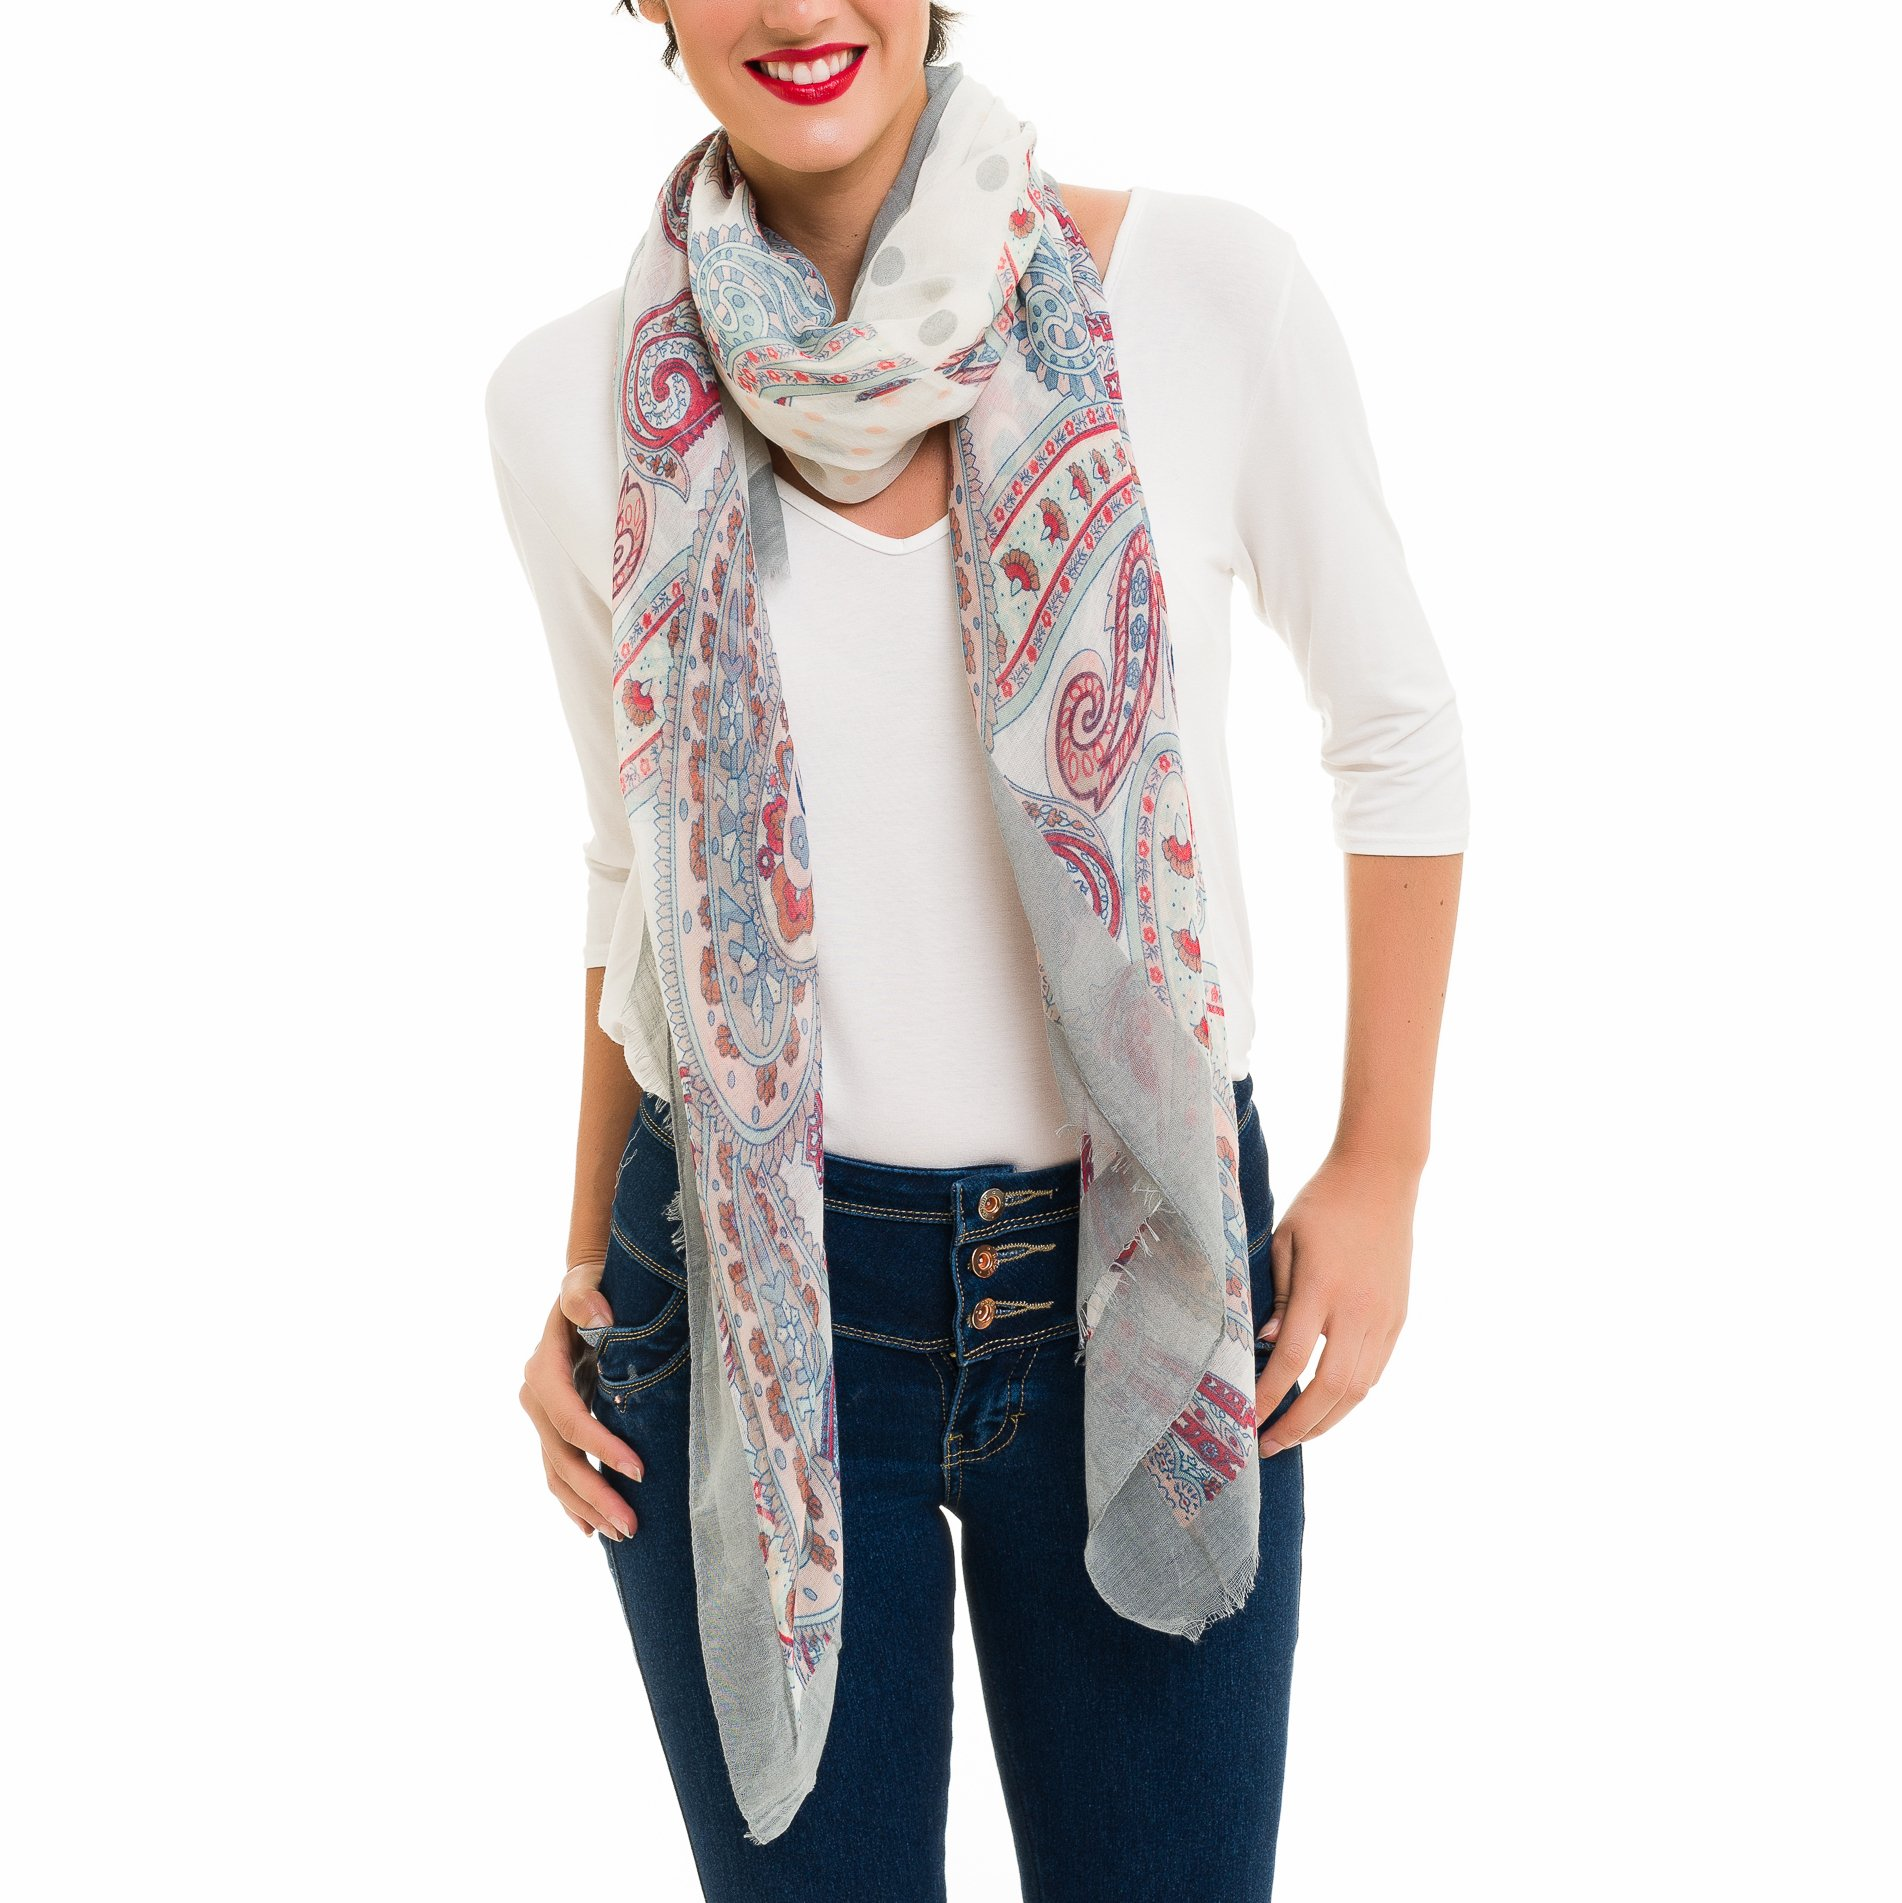 Scarf for Women Lightweight Paisley Fashion Fall Winter Scarves Shawl Wraps (SS43)